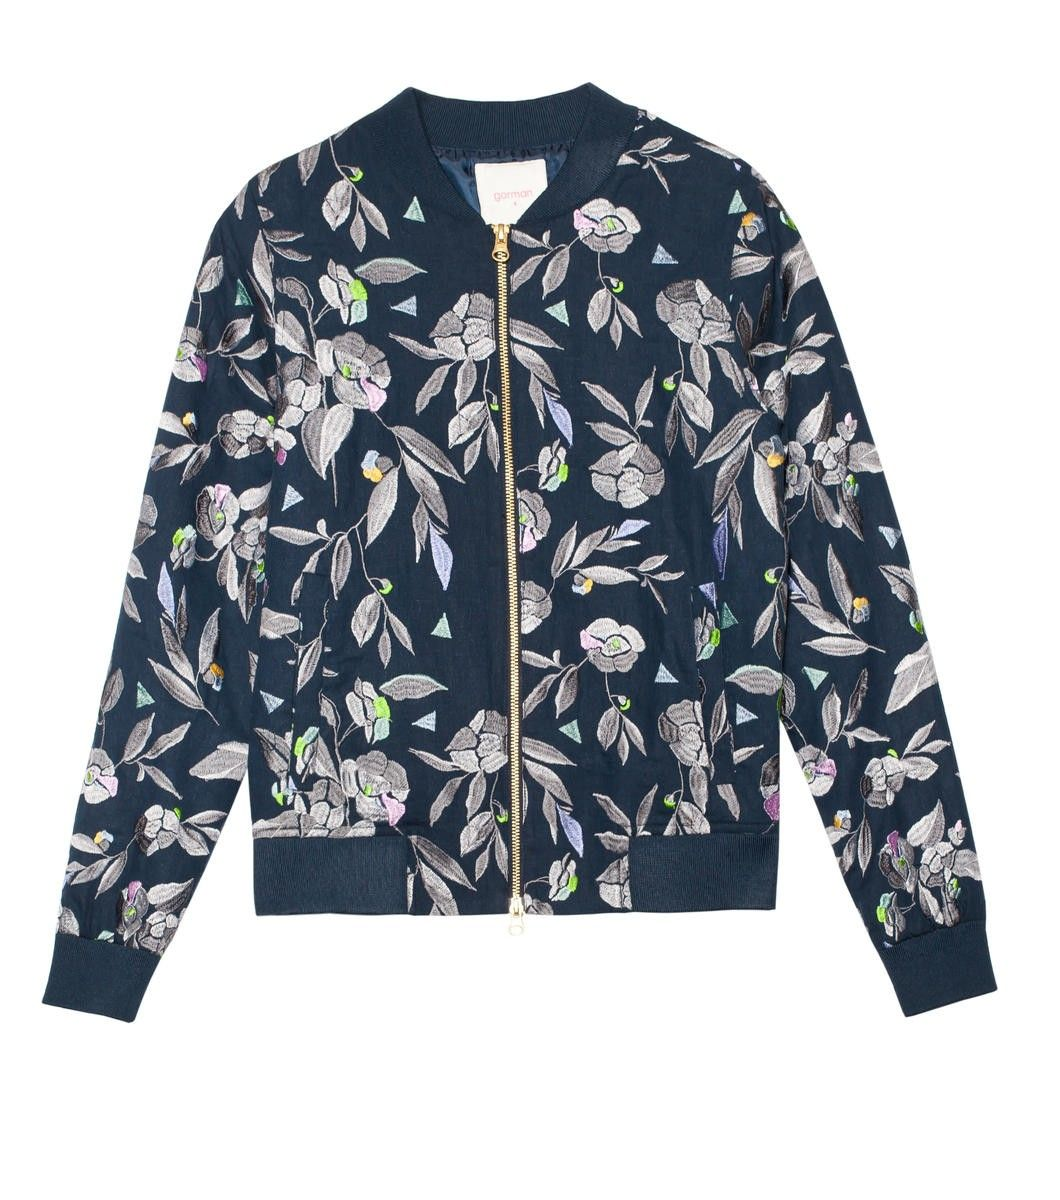 Shop for Night Walk Jacket In Navy from Gorman at Westfield Doncaster.  Browse the latest styles online and buy from a Westfield store.